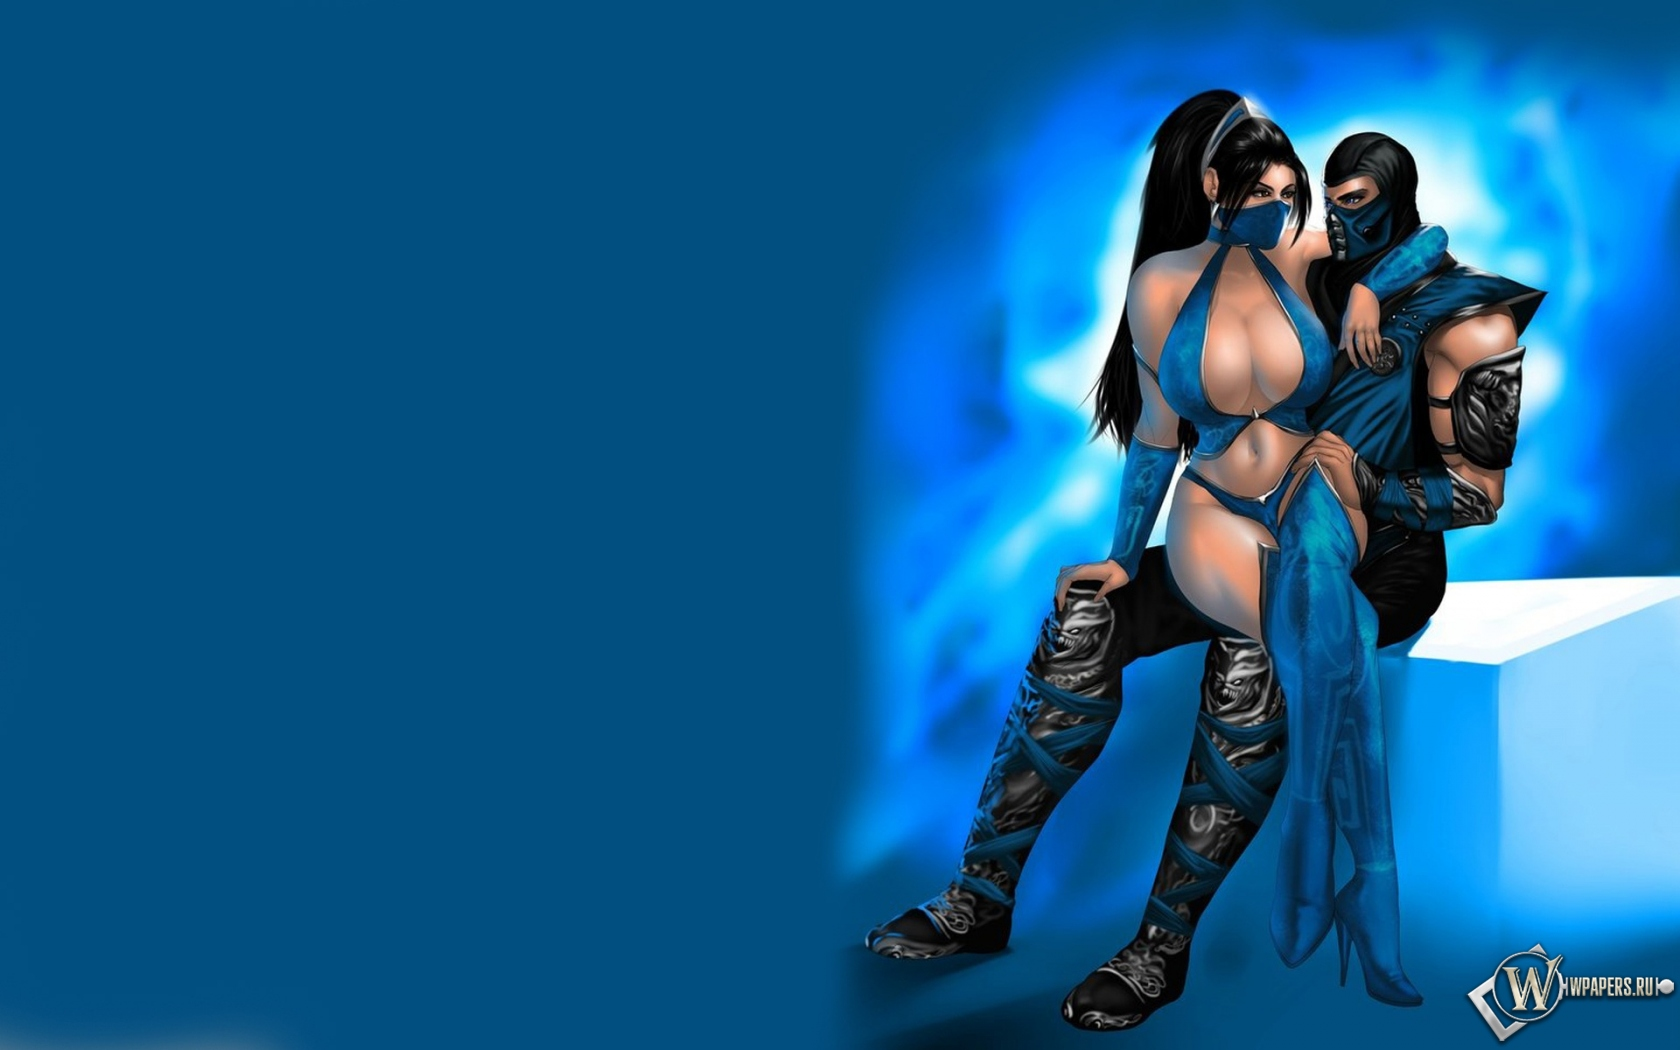 ... Картинки Mortal Kombat Sub Zero and Kitana Игра, Mortal: wpapers.ru/wallpapers/games/Mortal-Kombat/15986/1680-1050_Mortal...